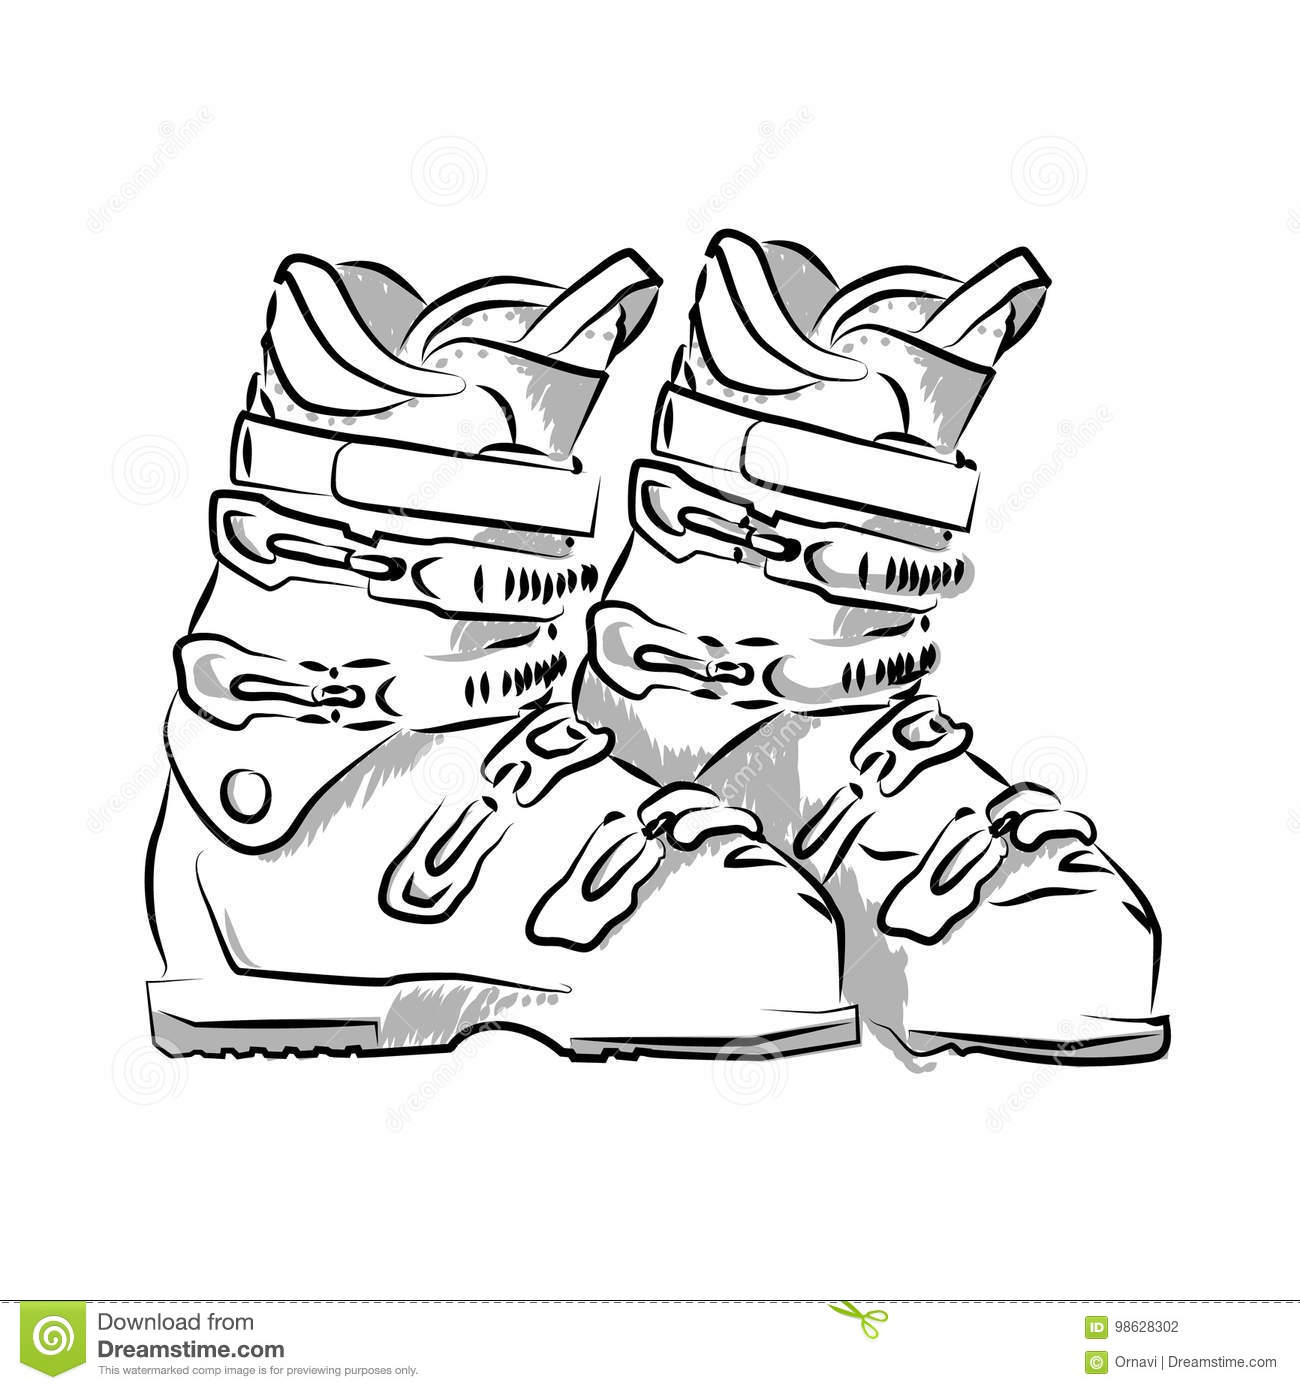 Drawing Of Ski Boots Stock Vector Illustration Of Outline